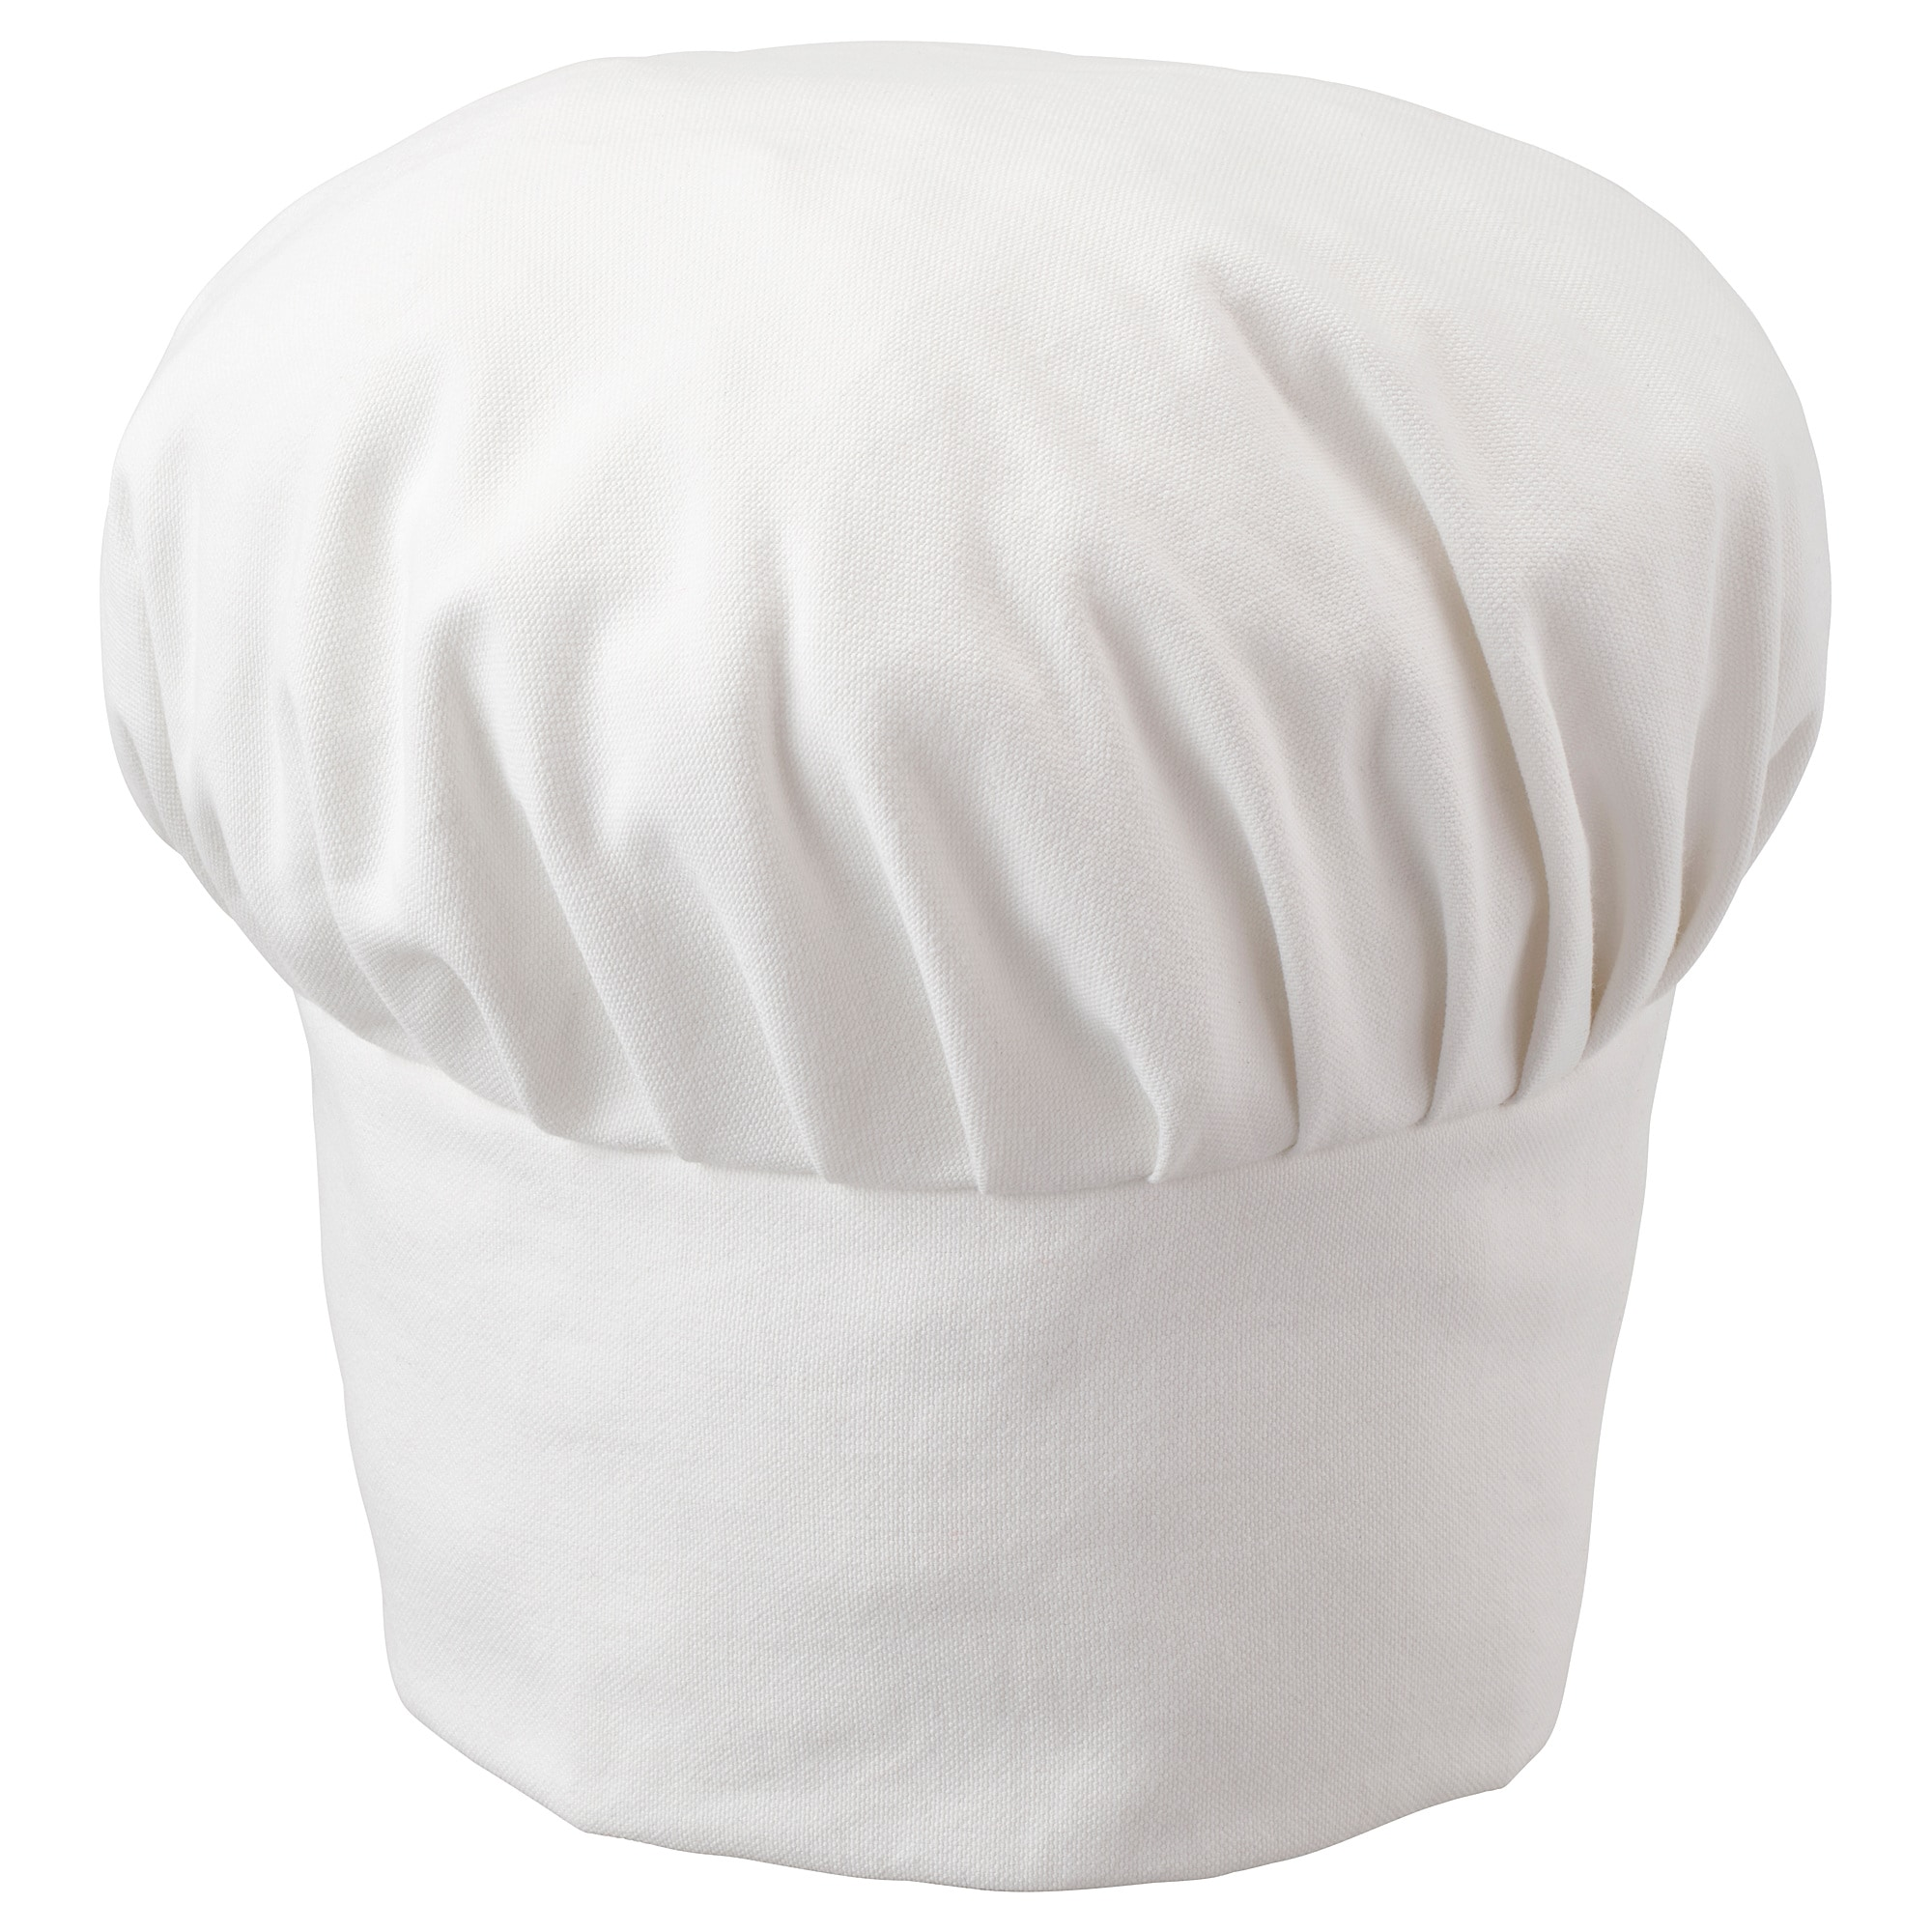 Chef S Hat Vinterfest White